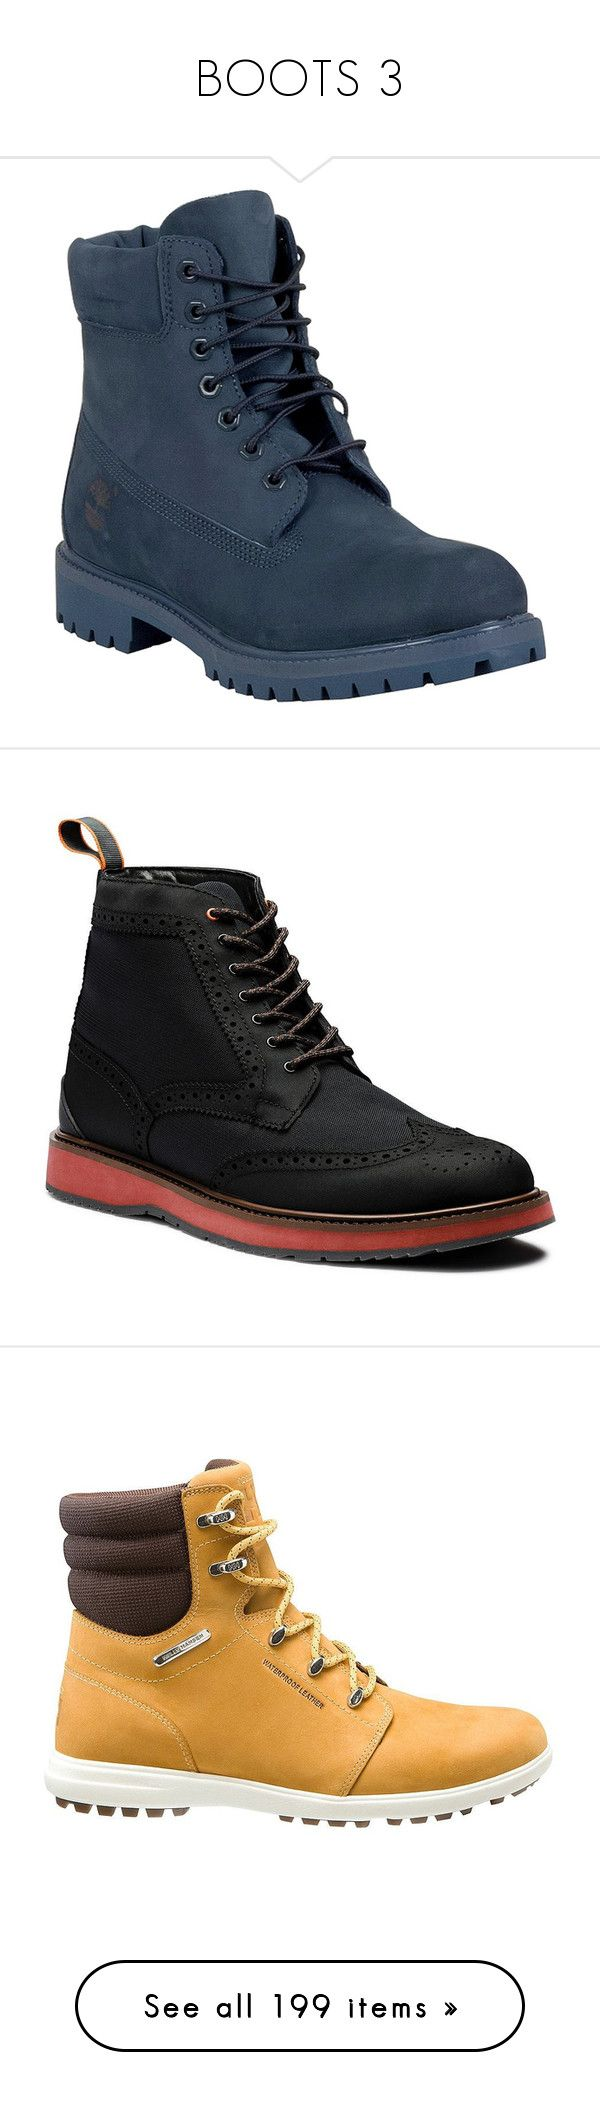 """""""BOOTS 3"""" by paulagriggs ❤ liked on Polyvore featuring men's fashion, men's shoes, men's boots, men's work boots, shoes, navy, mens waterproof work boots, mens fur lined boots, mens rubber boots and mens lace up boots"""